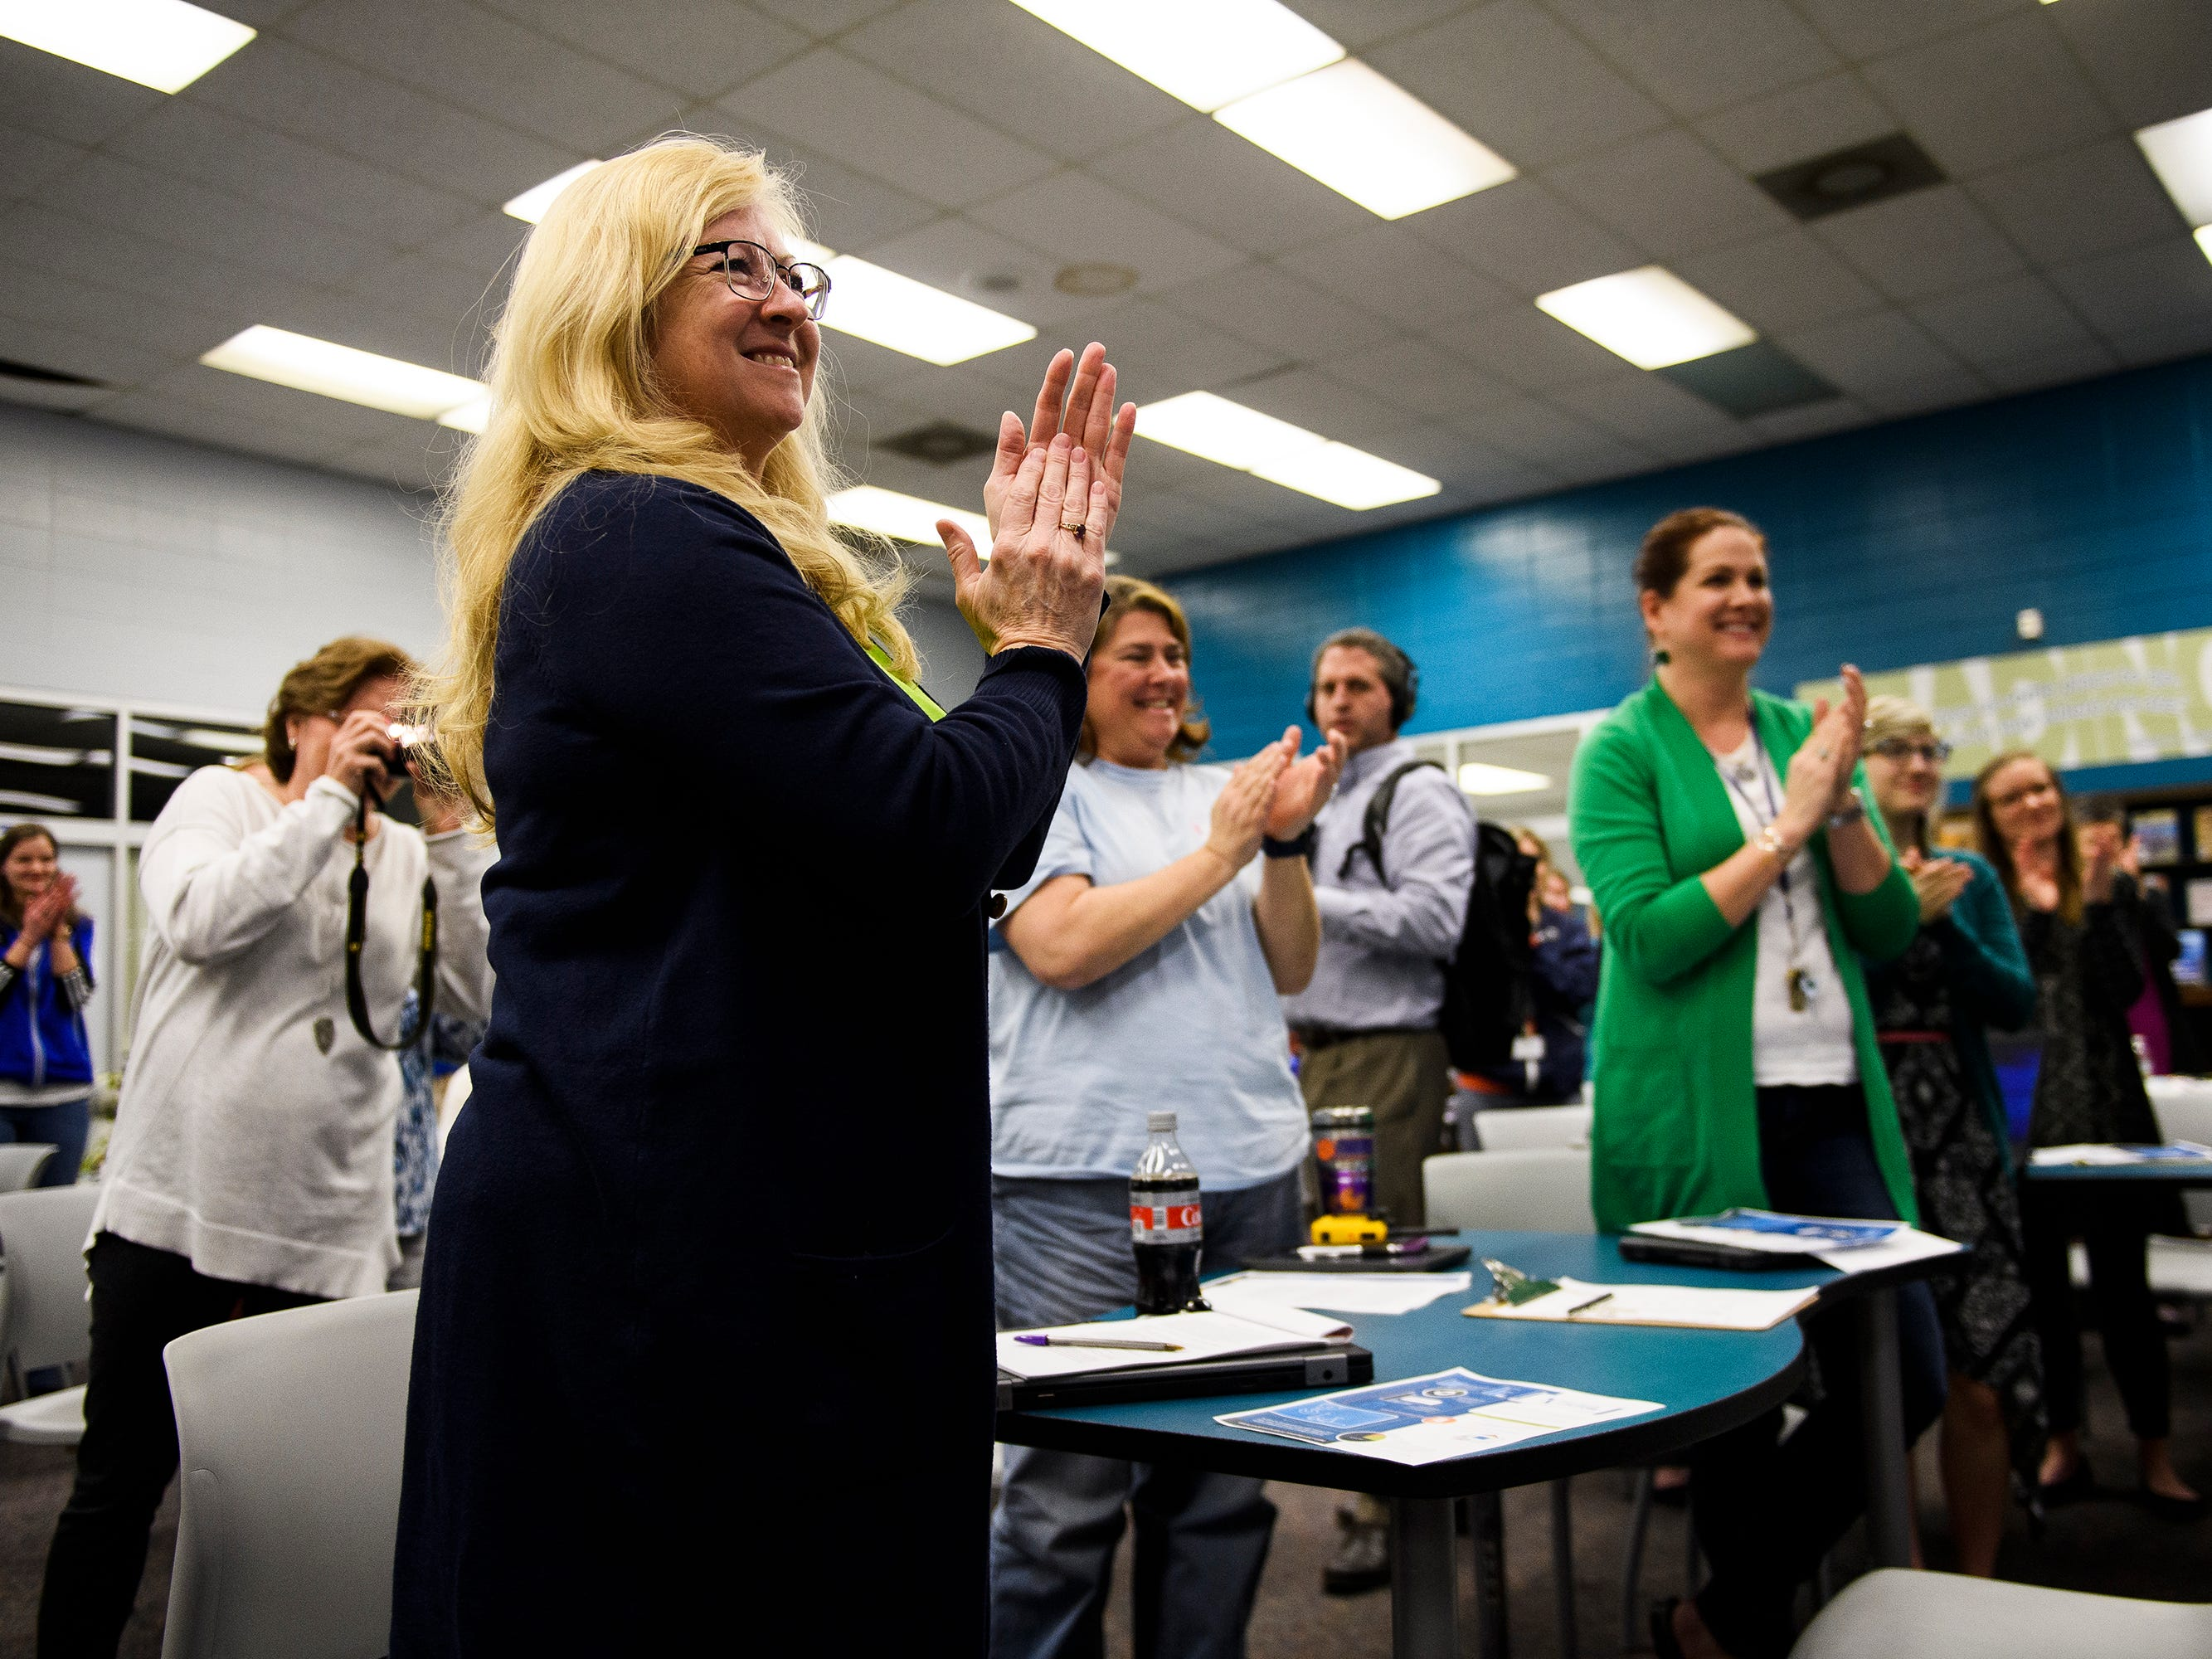 Teachers and faculty members at Wren High School applaud Tamara Cox after she is is named as one of five finalists for South Carolina Teacher of the Year Wednesday, March 13, 2019.